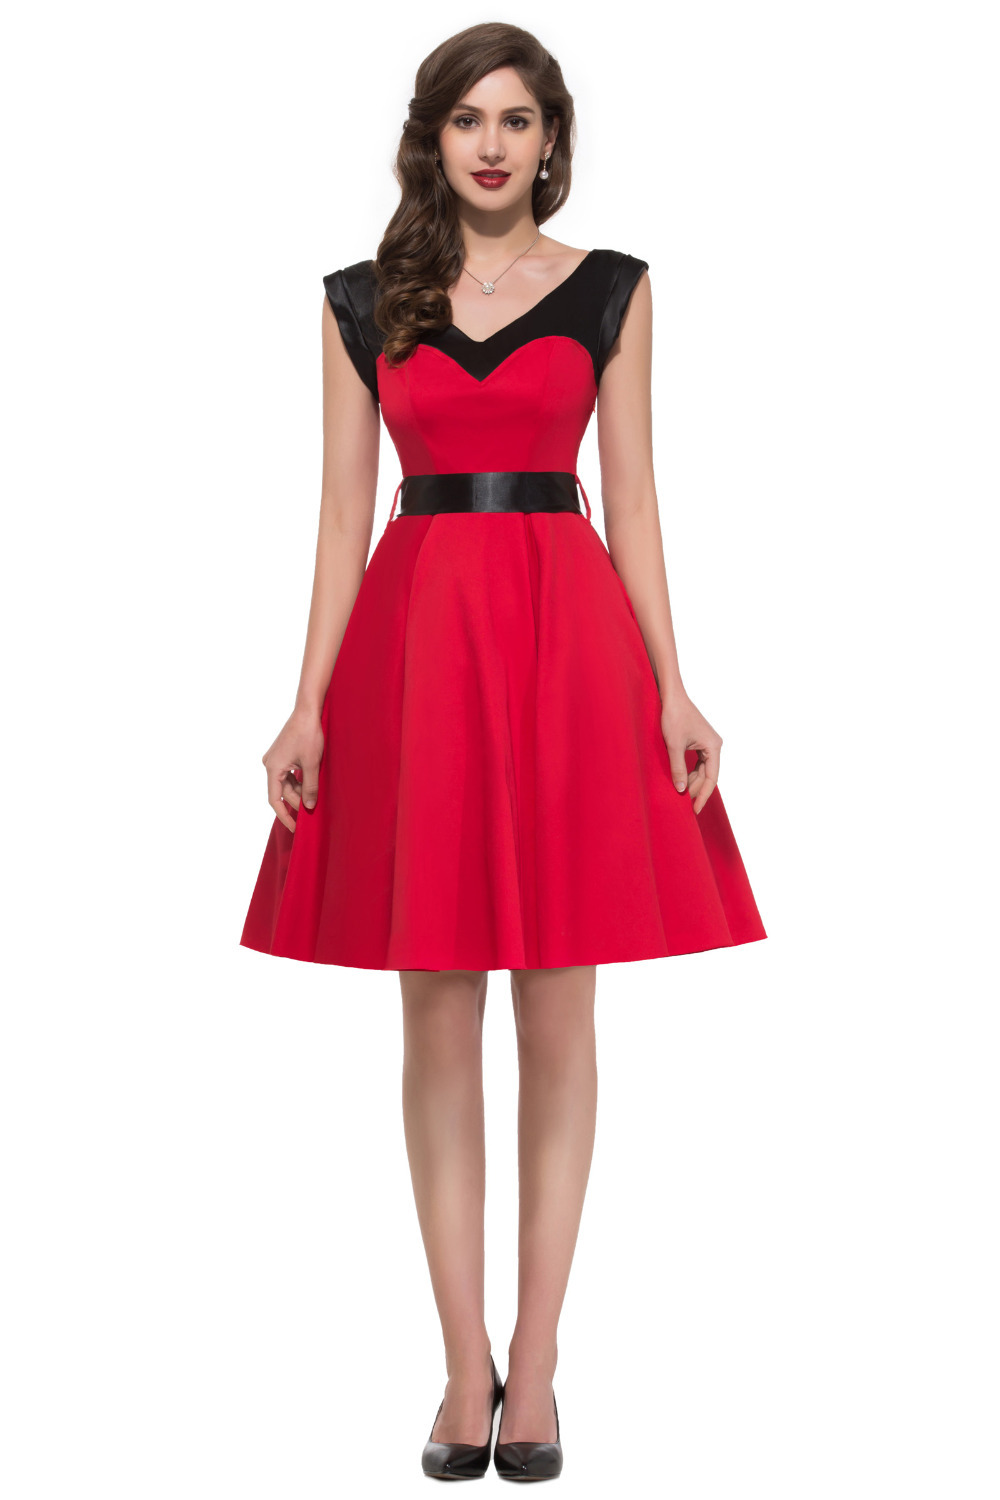 Freshen up your wardrobe with a new dress from JCPenney! We carry a variety of /10 (K reviews).